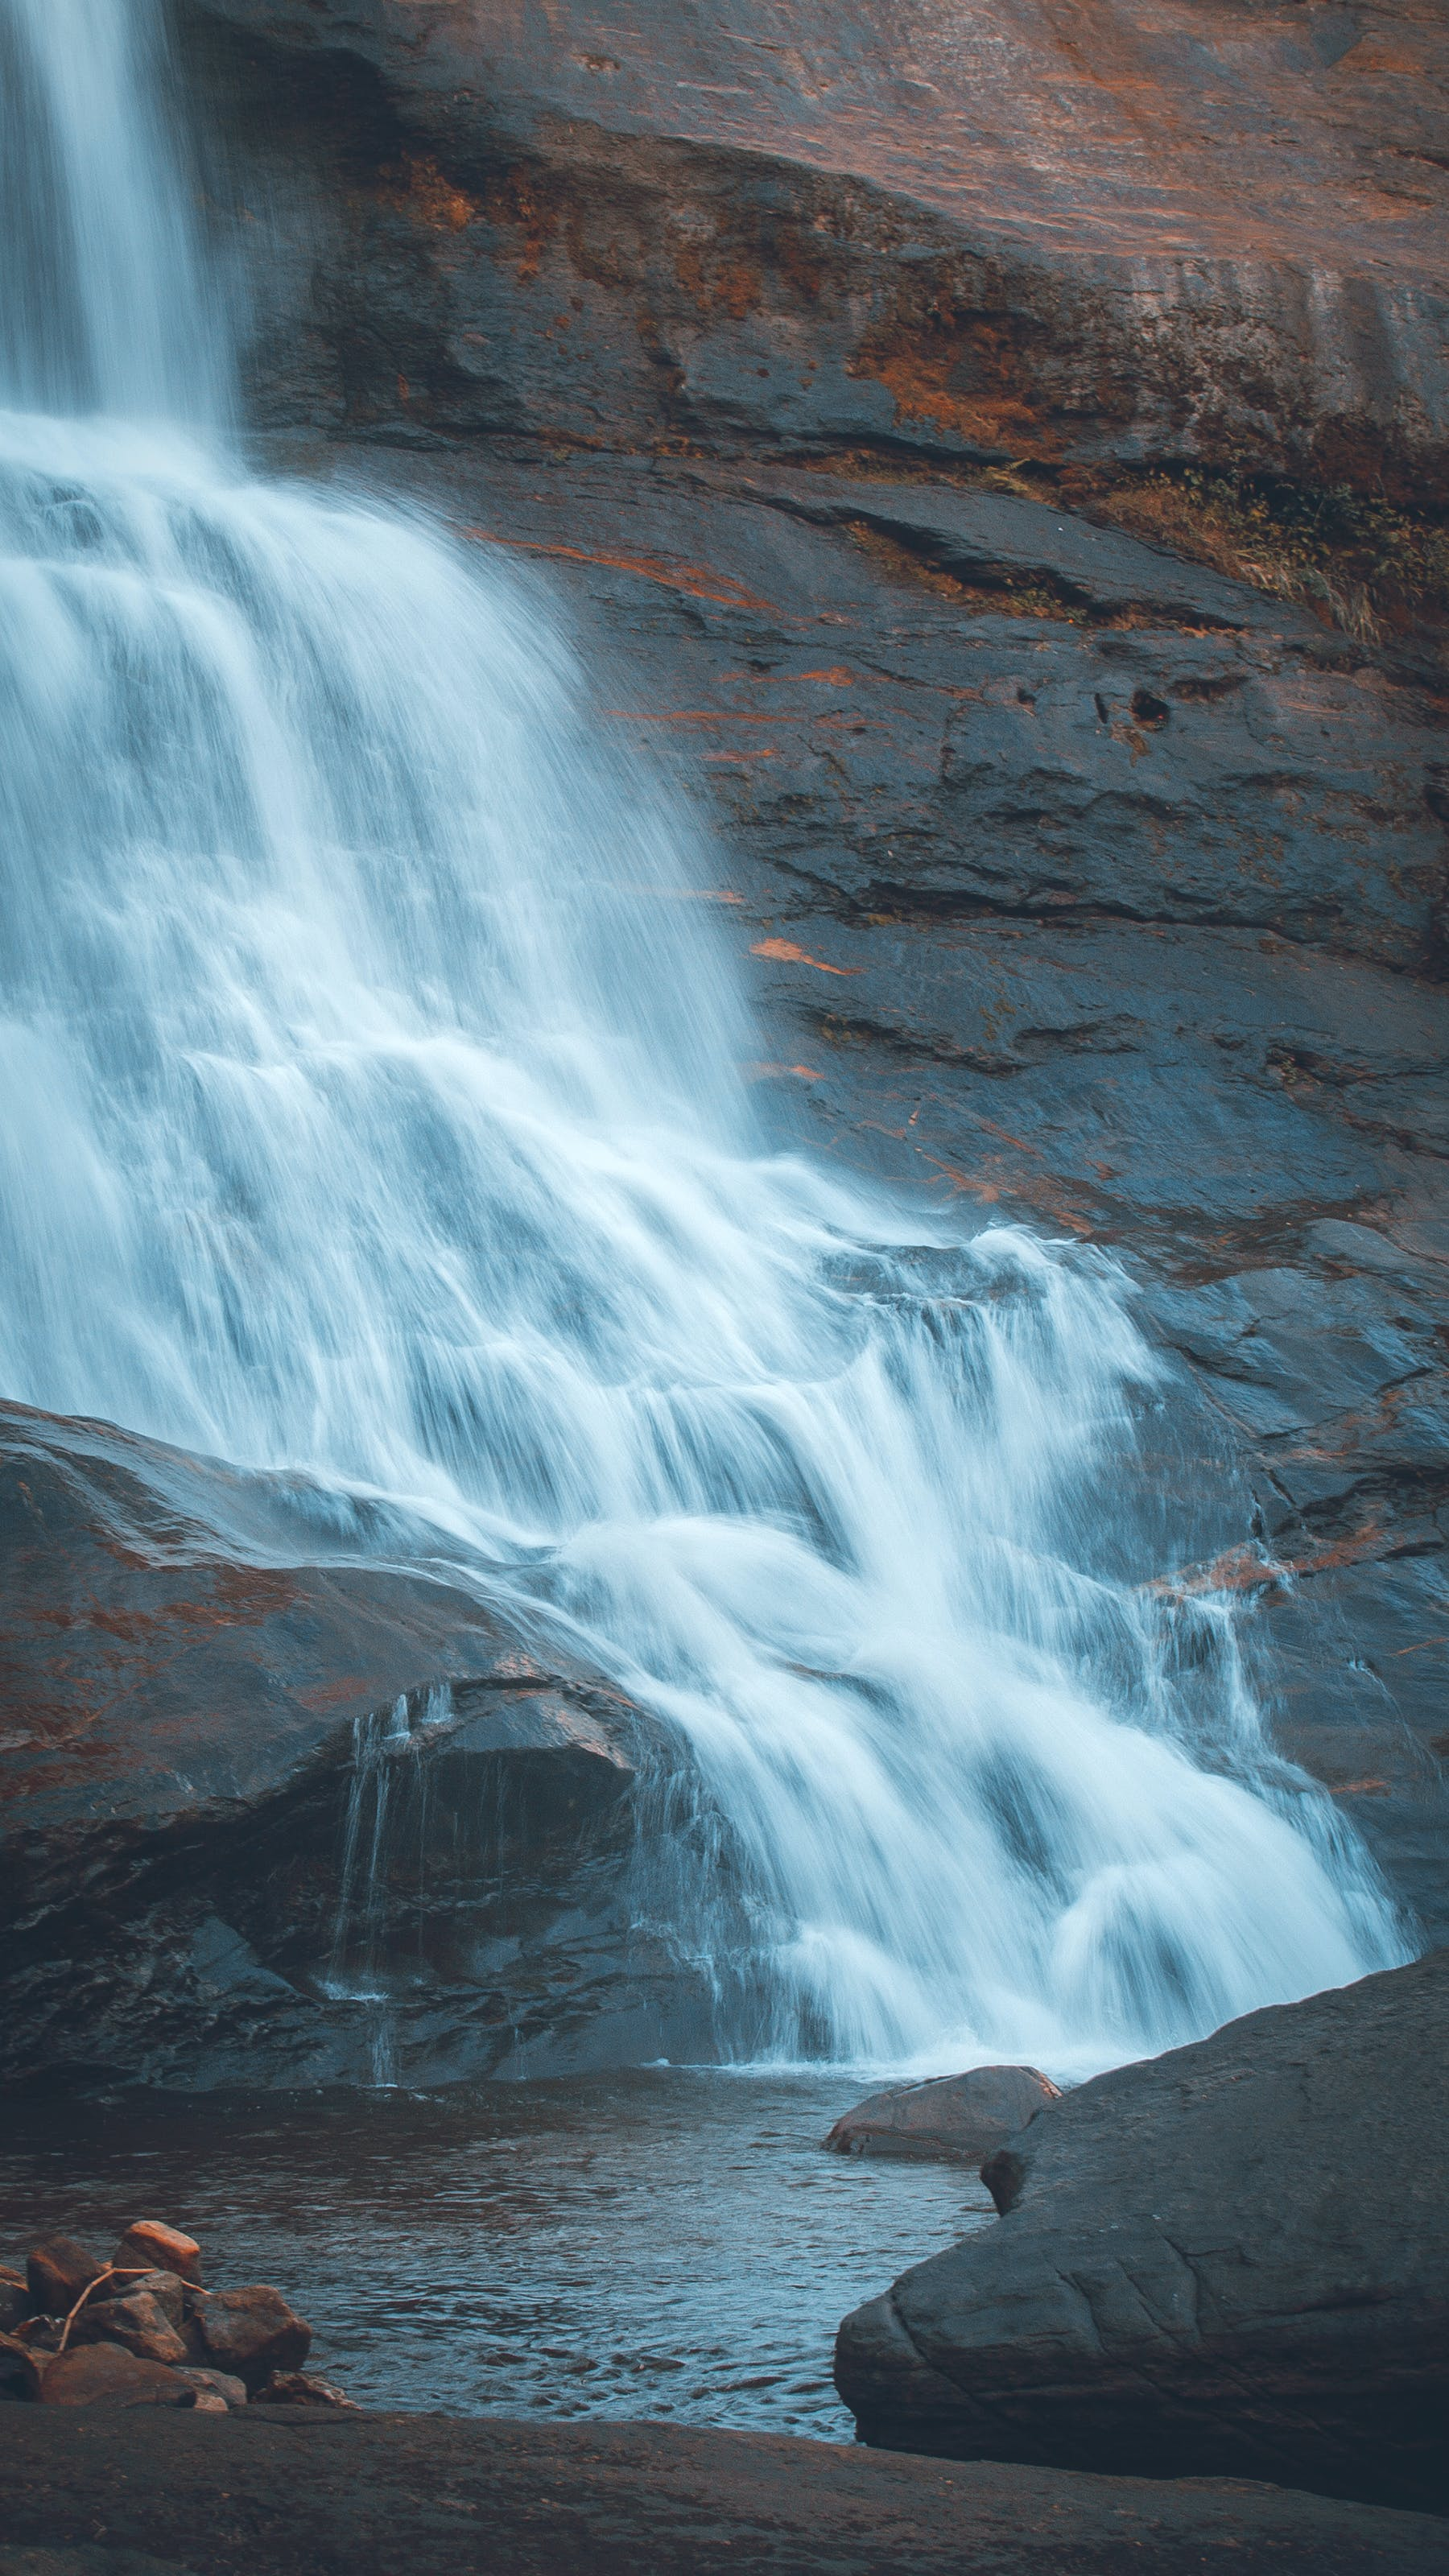 Free stock photo of home screen, iphone wallpaper, lock screen wallpaper, waterfall